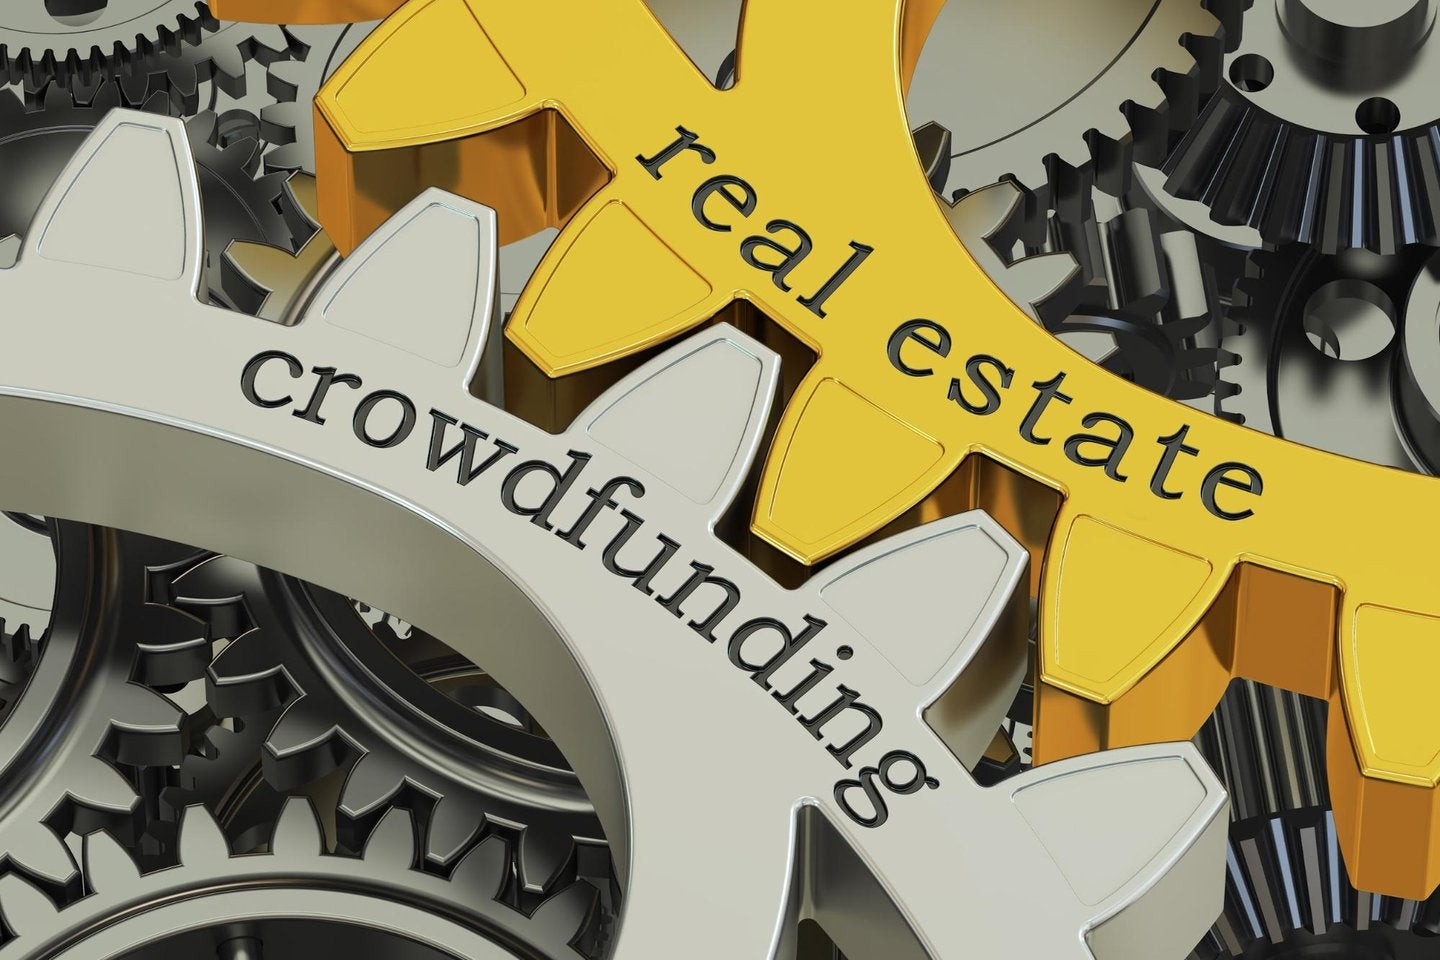 Gears showing real estate and crowdfunding